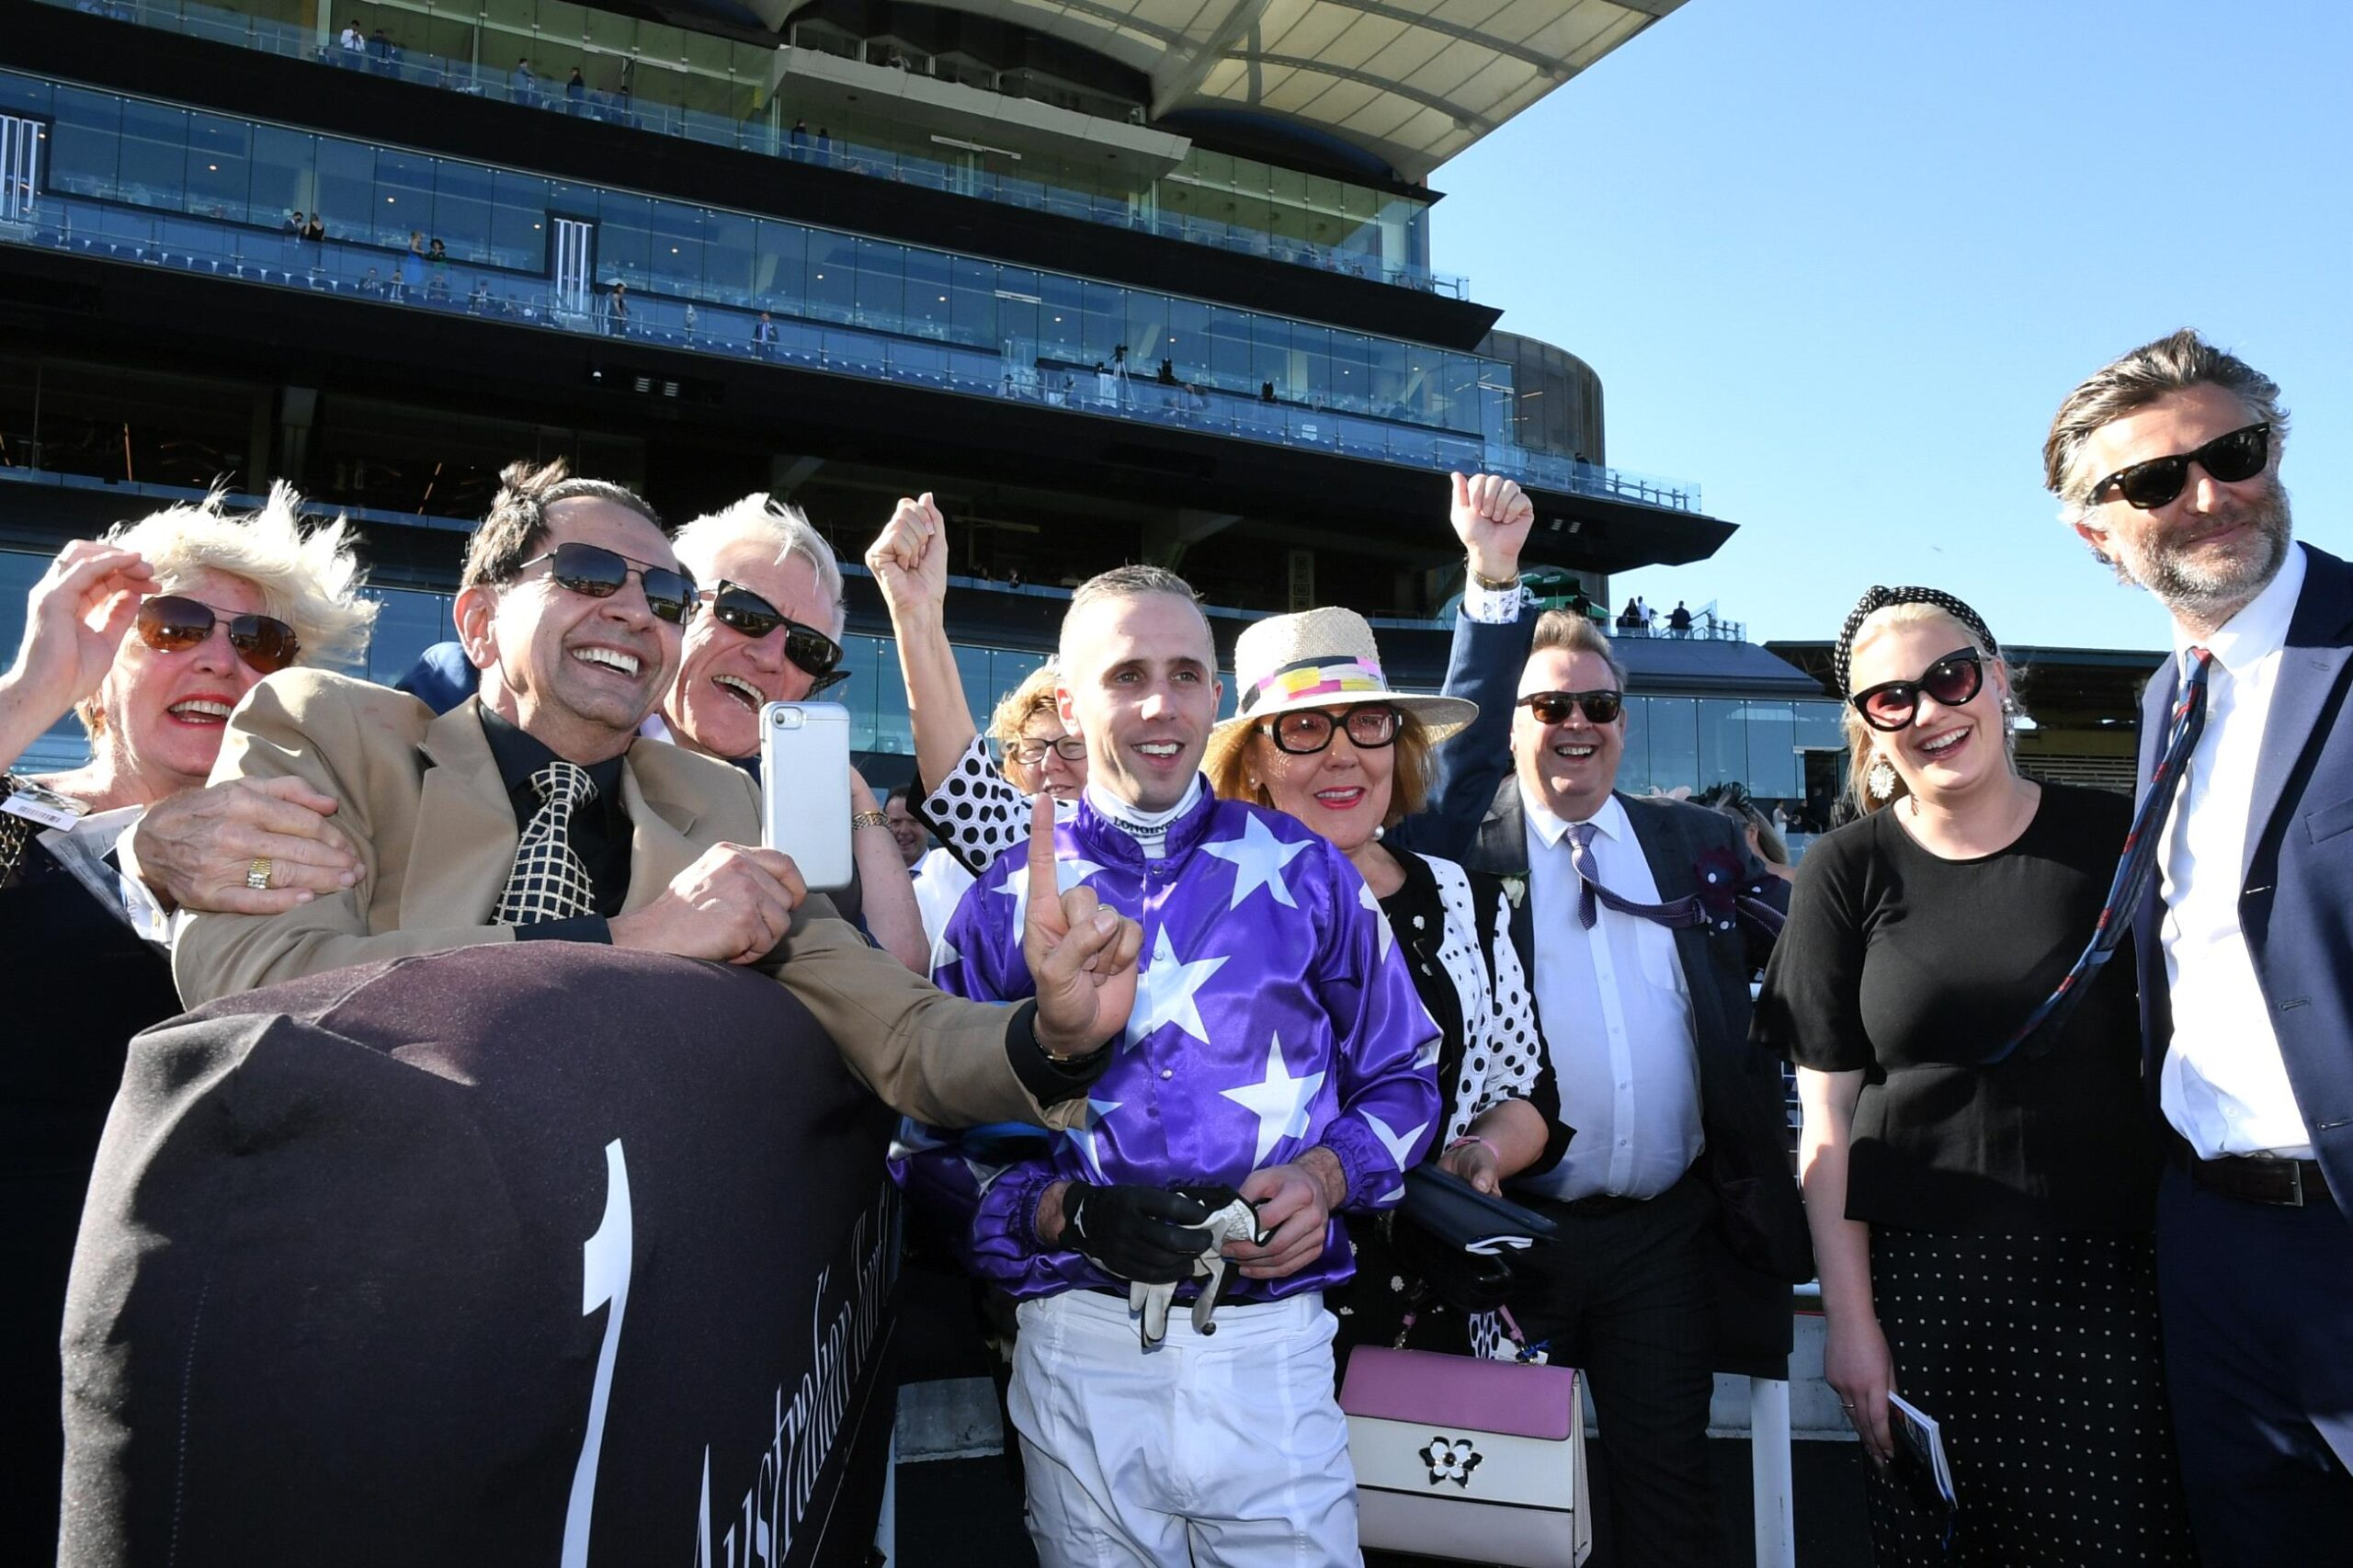 Brenton Avdulla was on fire with four winners